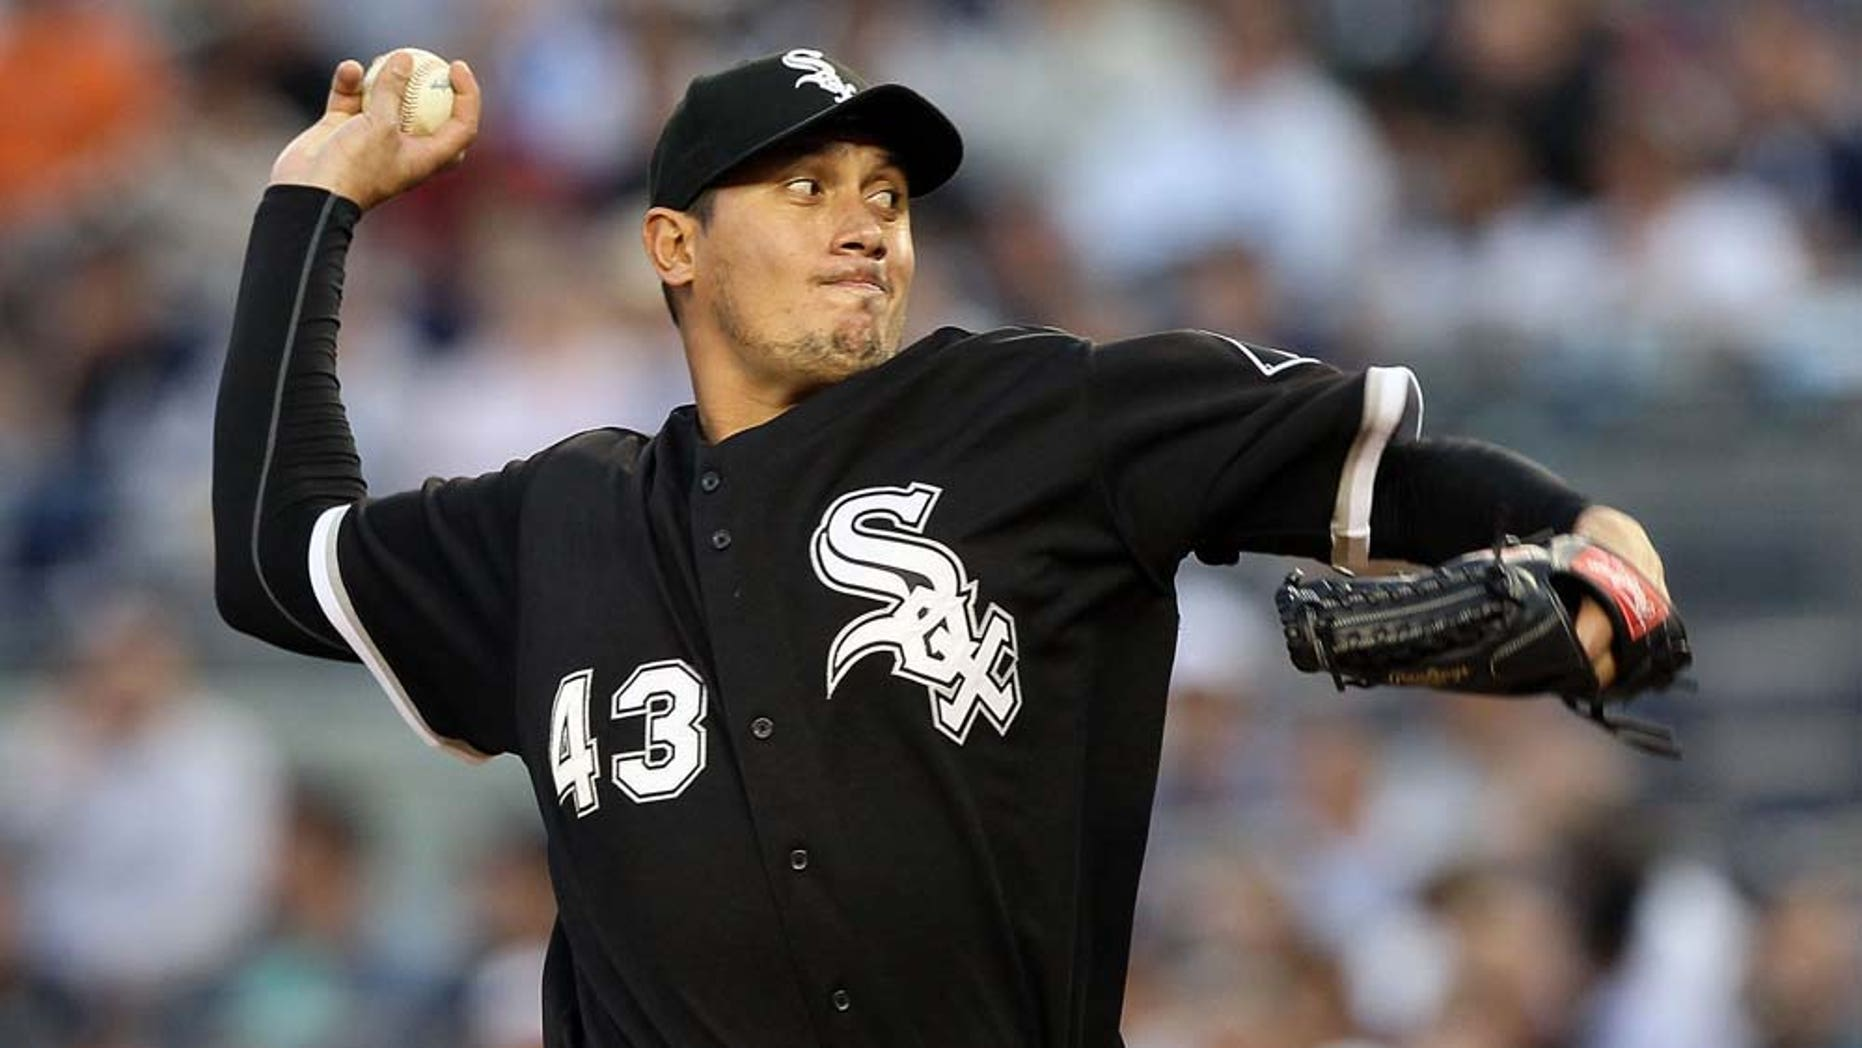 NEW YORK - APRIL 30:  Freddy Garcia #43 of the Chicago White Sox pitches against the New York Yankees on April 30, 2010 at Yankee Stadium in the Bronx borough of New York City.  (Photo by Jim McIsaac/Getty Images)